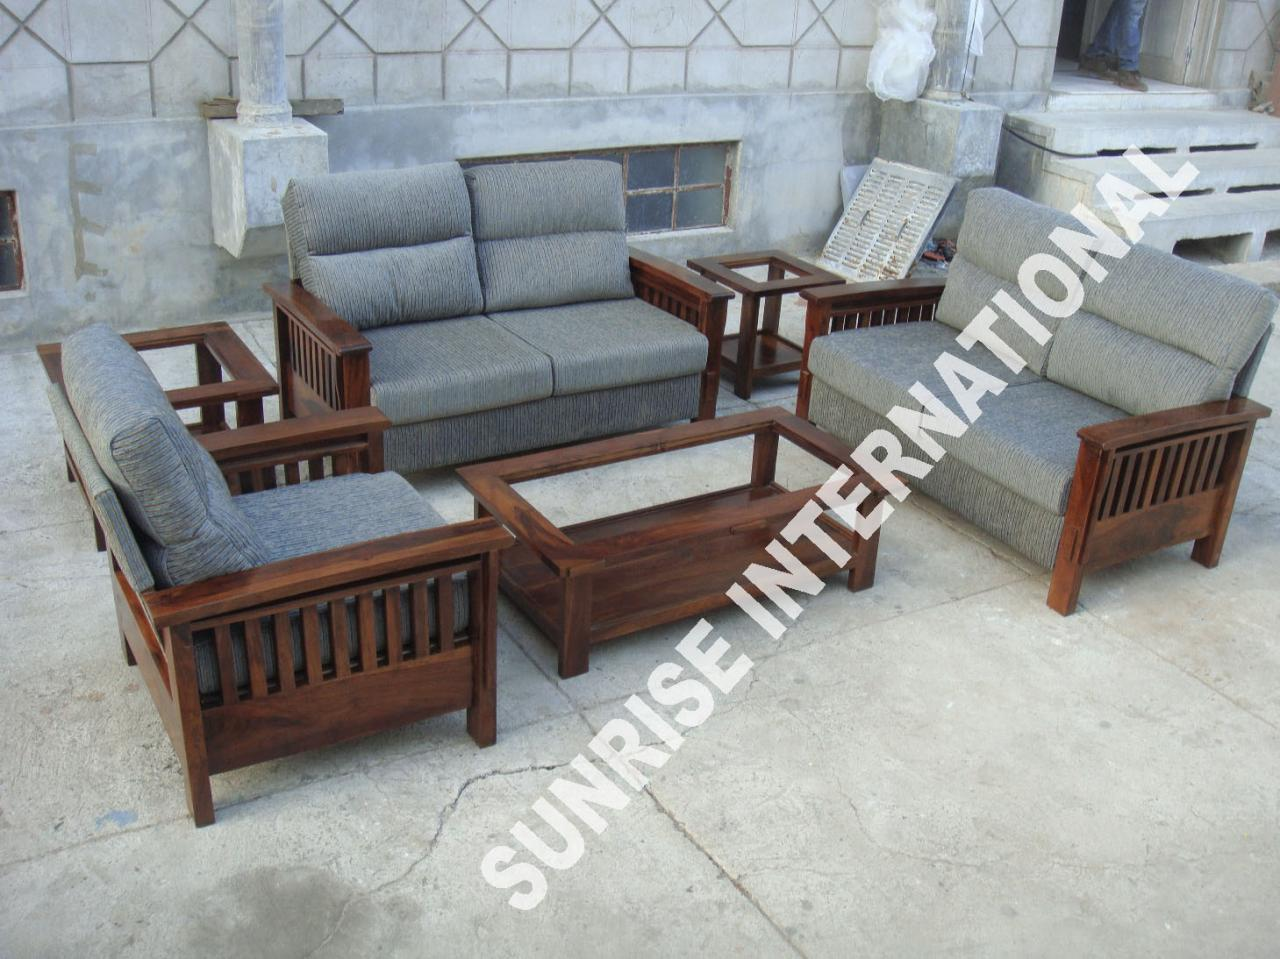 Wooden Sala Set Rizal Sunrise International Wooden Sofa Sets And L Shade Sofa Set